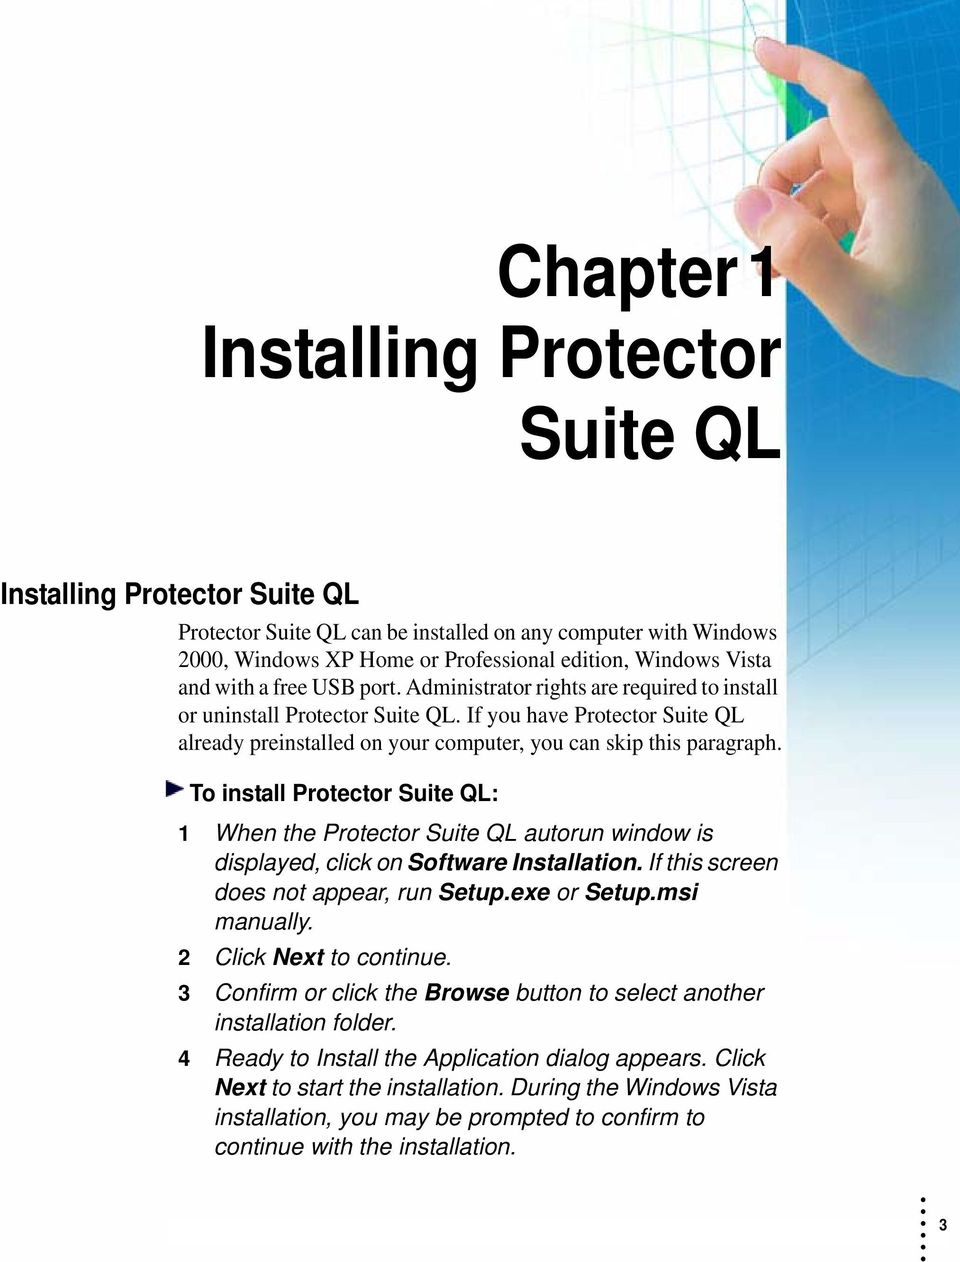 To install Protector Suite QL: 1 When the Protector Suite QL autorun window is displayed, click on Software Installation. If this screen does not appear, run Setup.exe or Setup.msi manually.